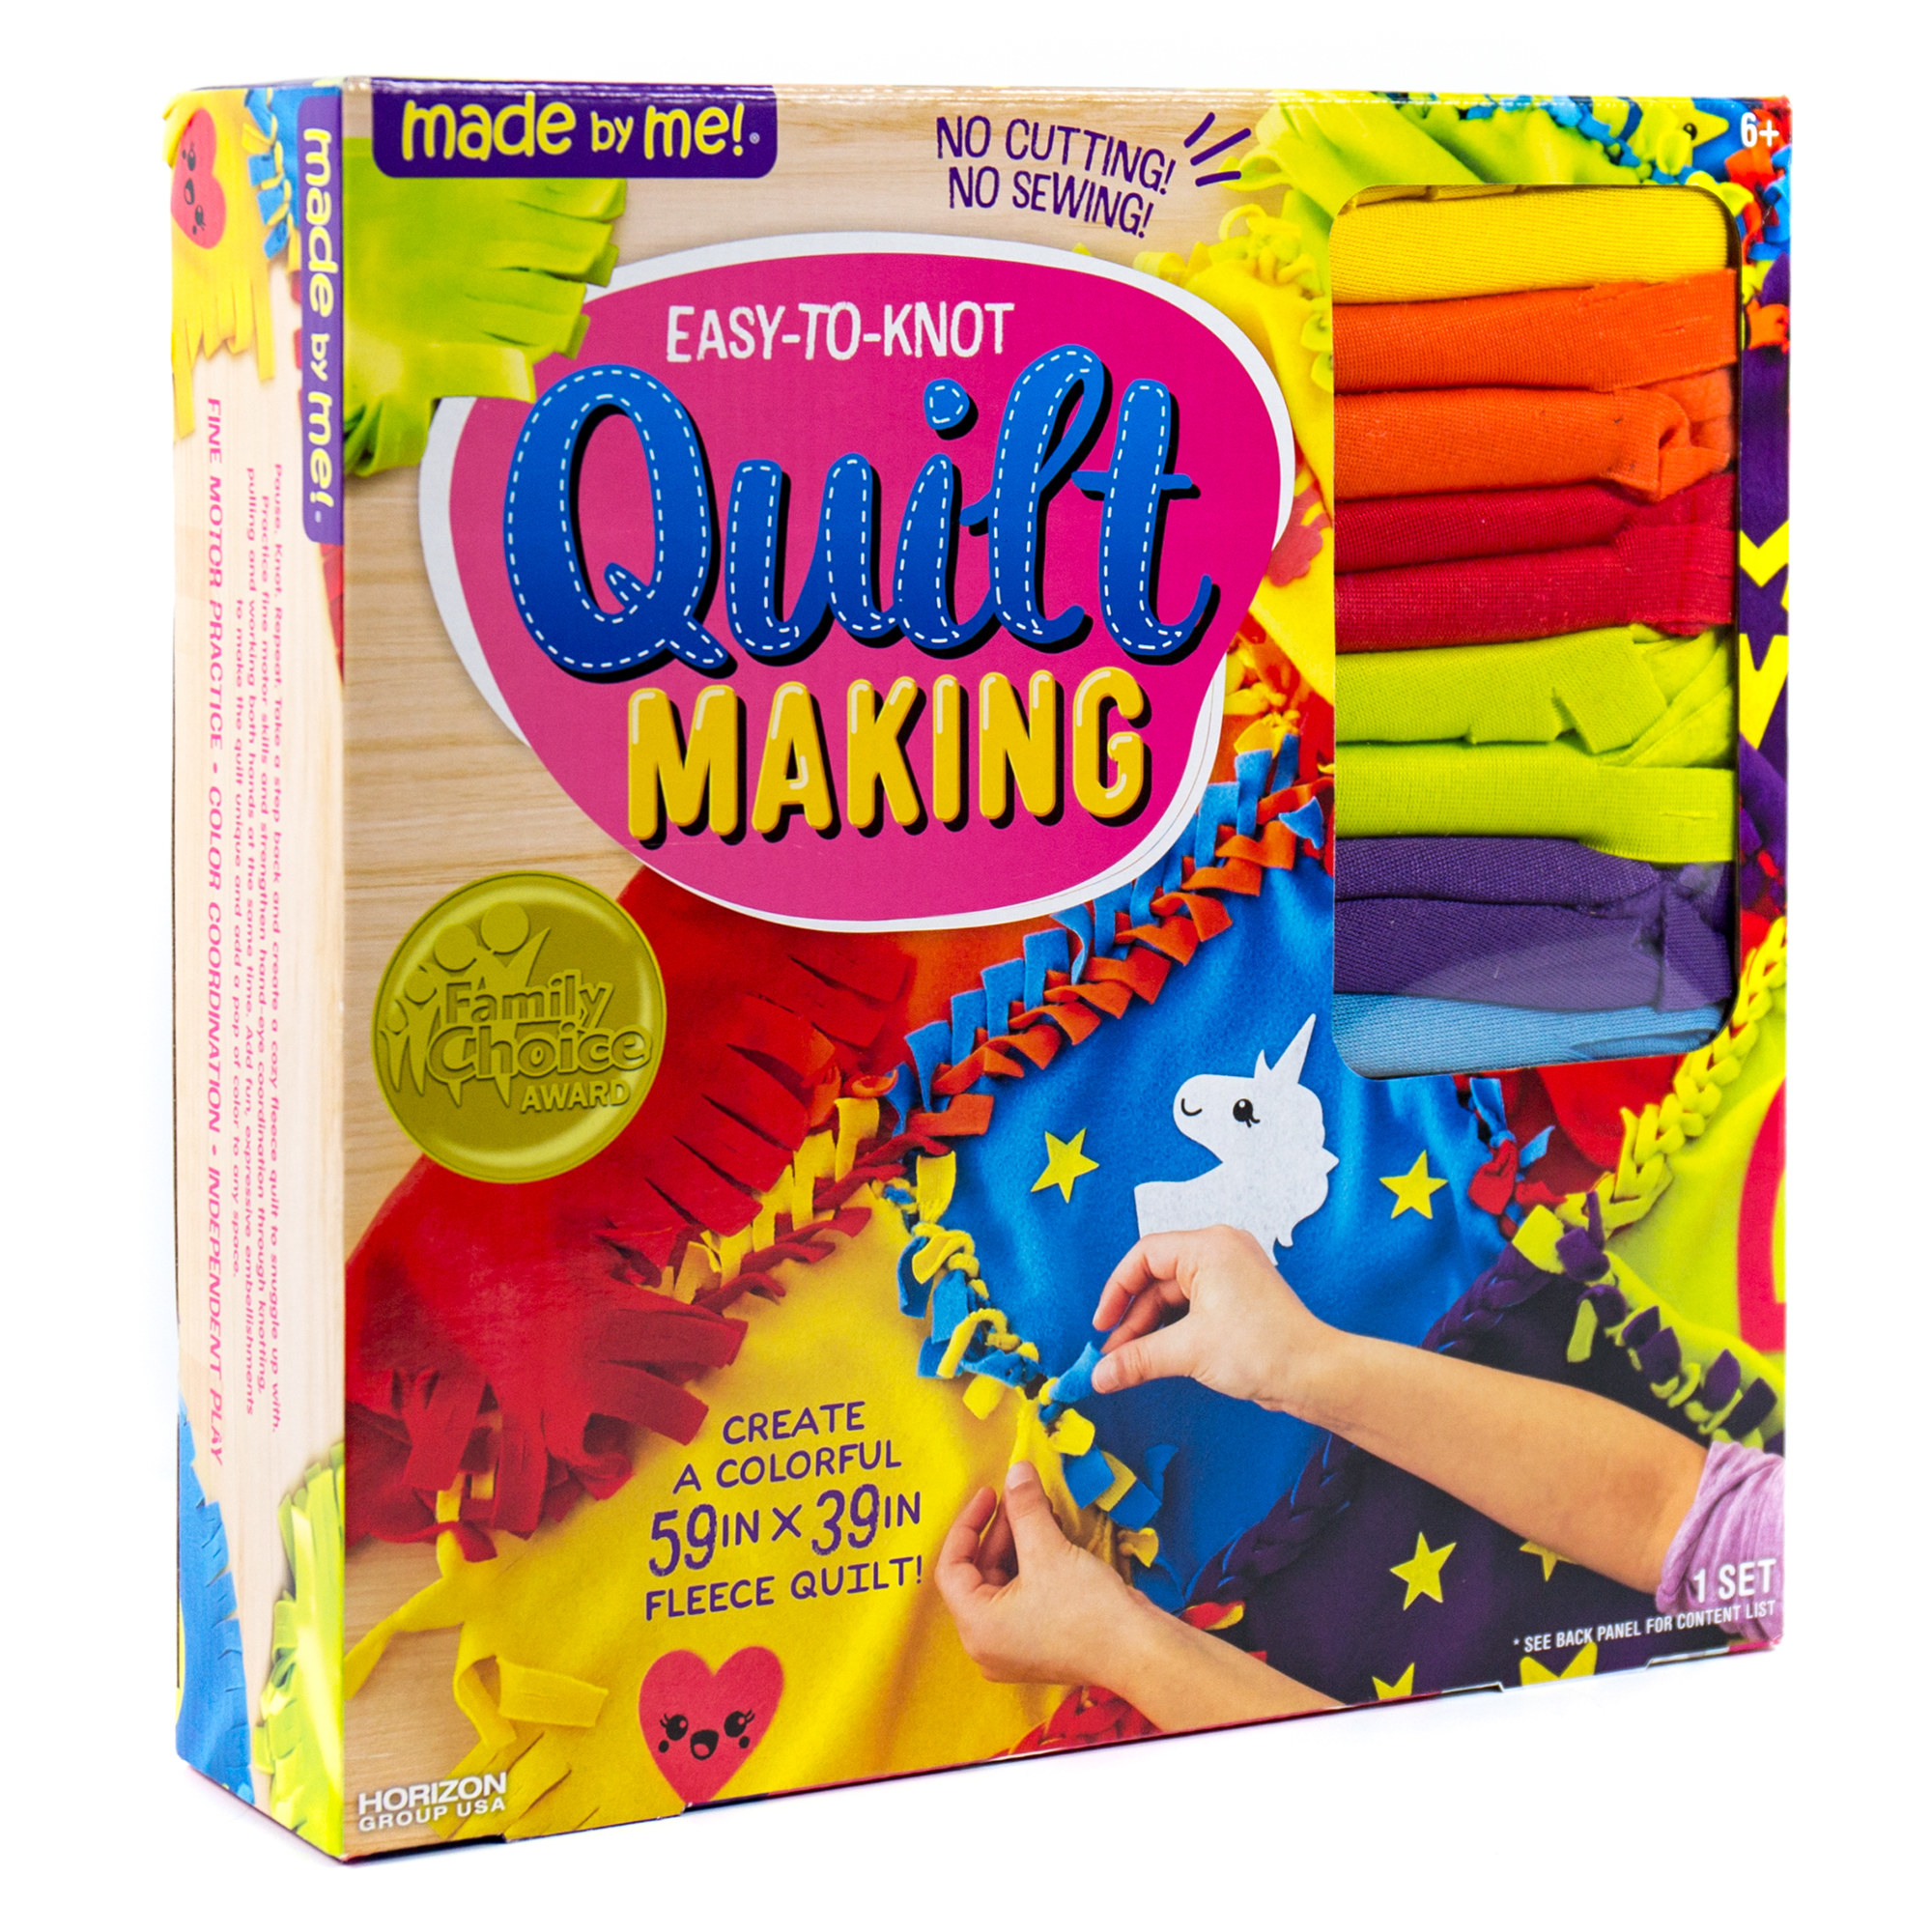 the quilt-making kit